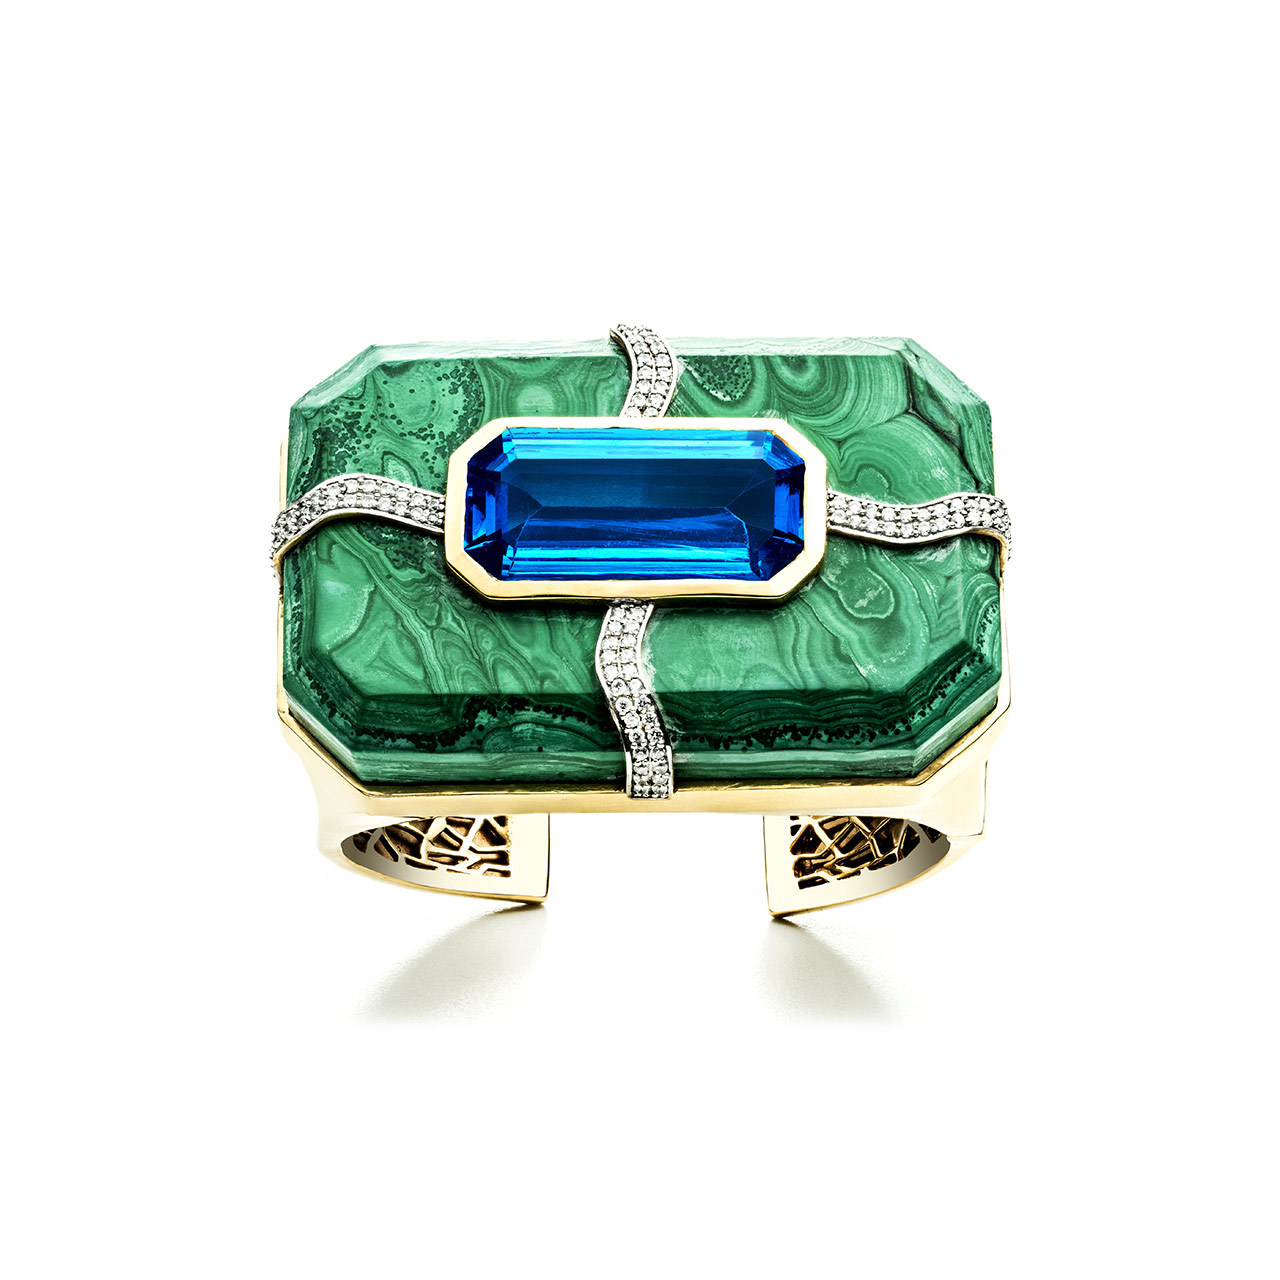 One of our all-time favorite pieces from Kara – the large Lava cuff in malachite set with a blue topaz.